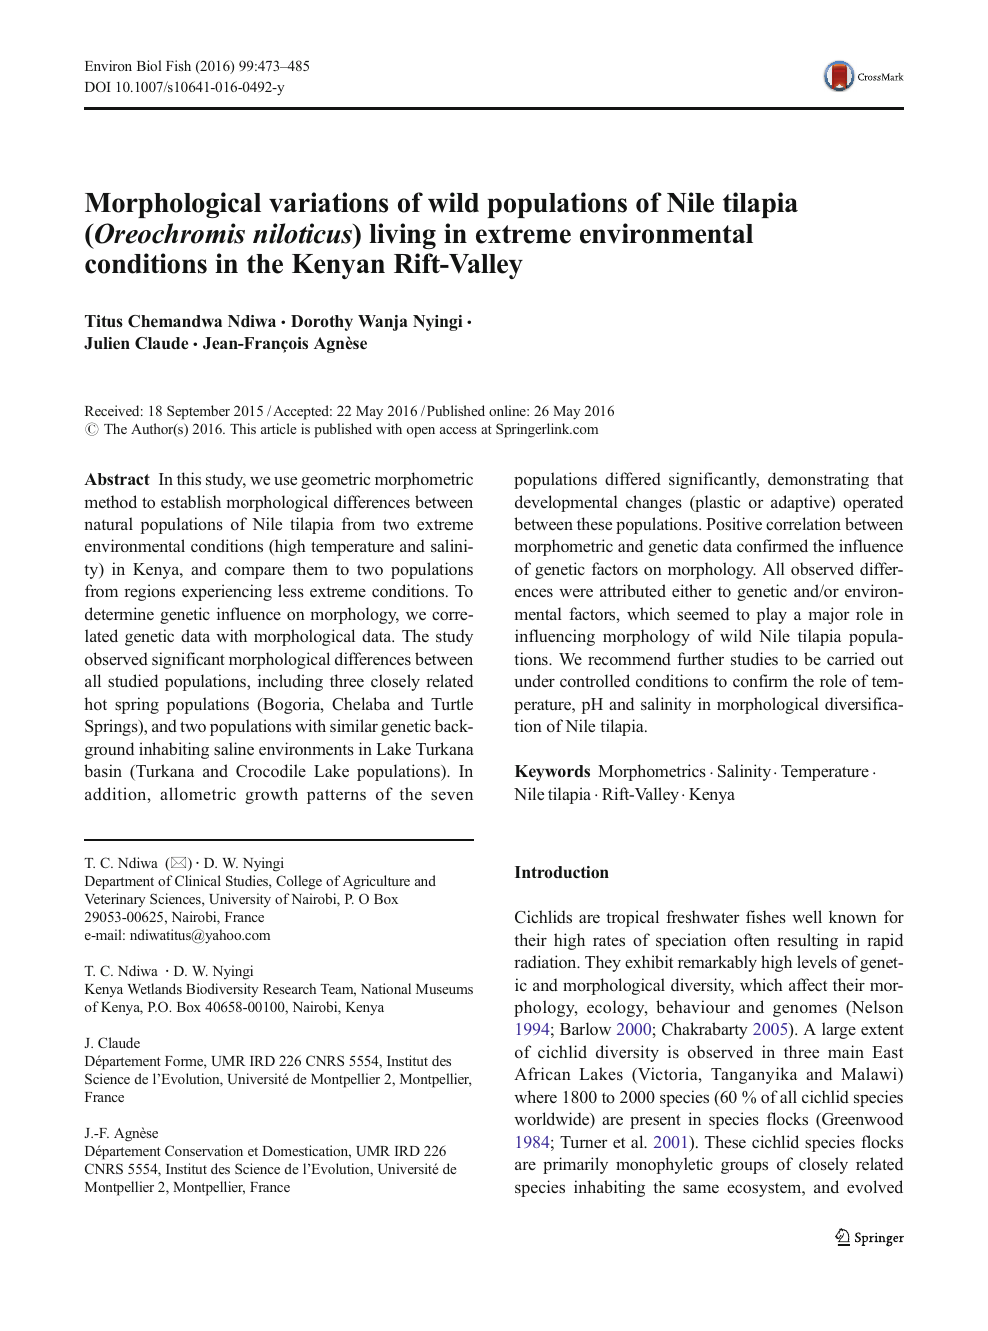 Morphological variations of wild populations of Nile tilapia